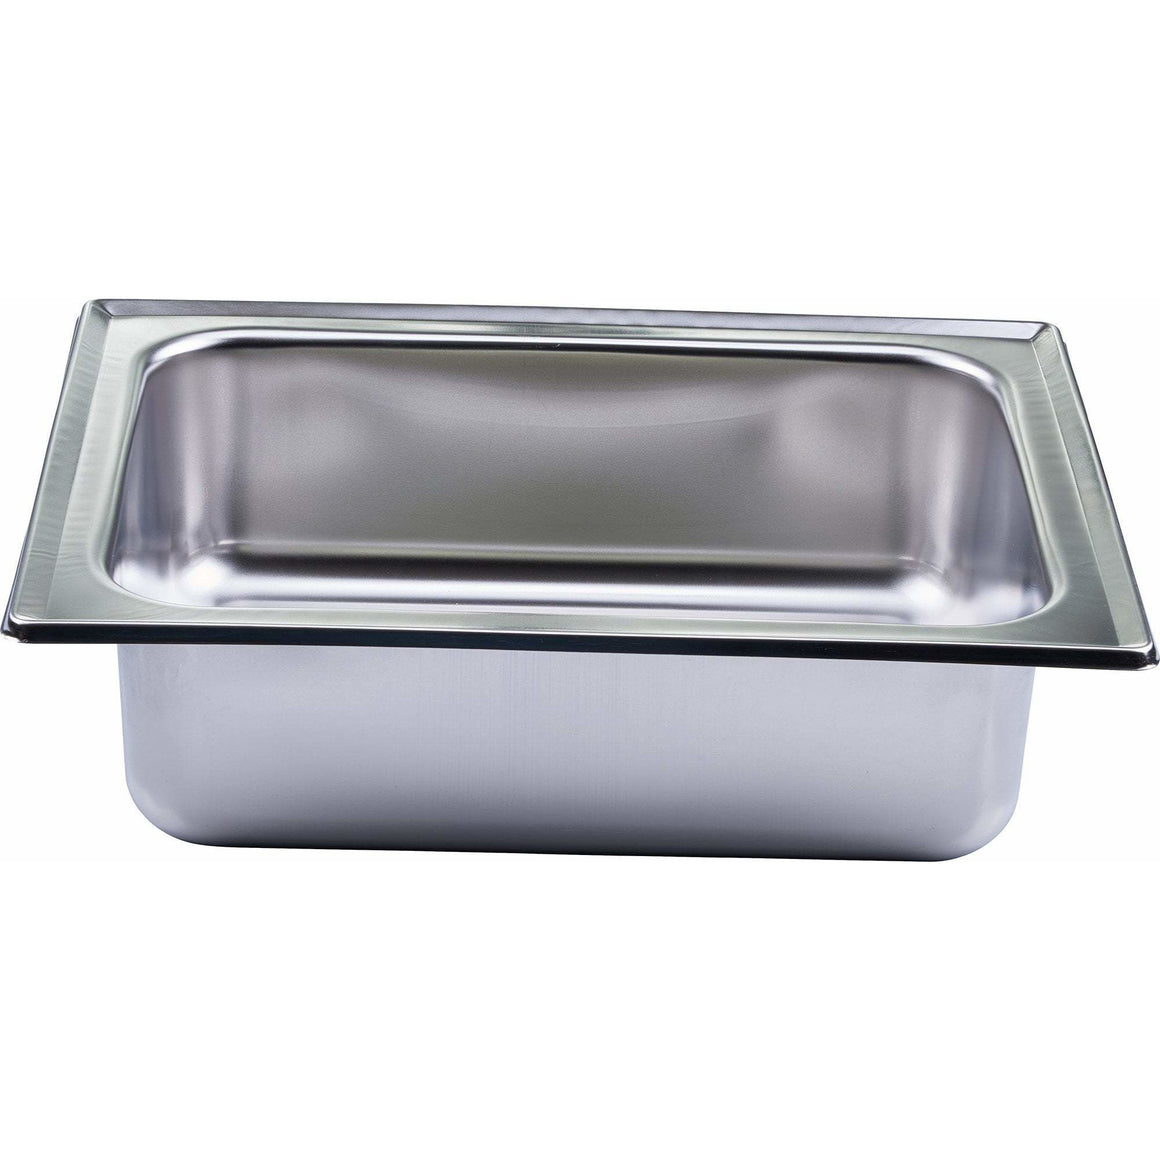 Winco - 508-WP - Water Pan for 508 - Buffet Service